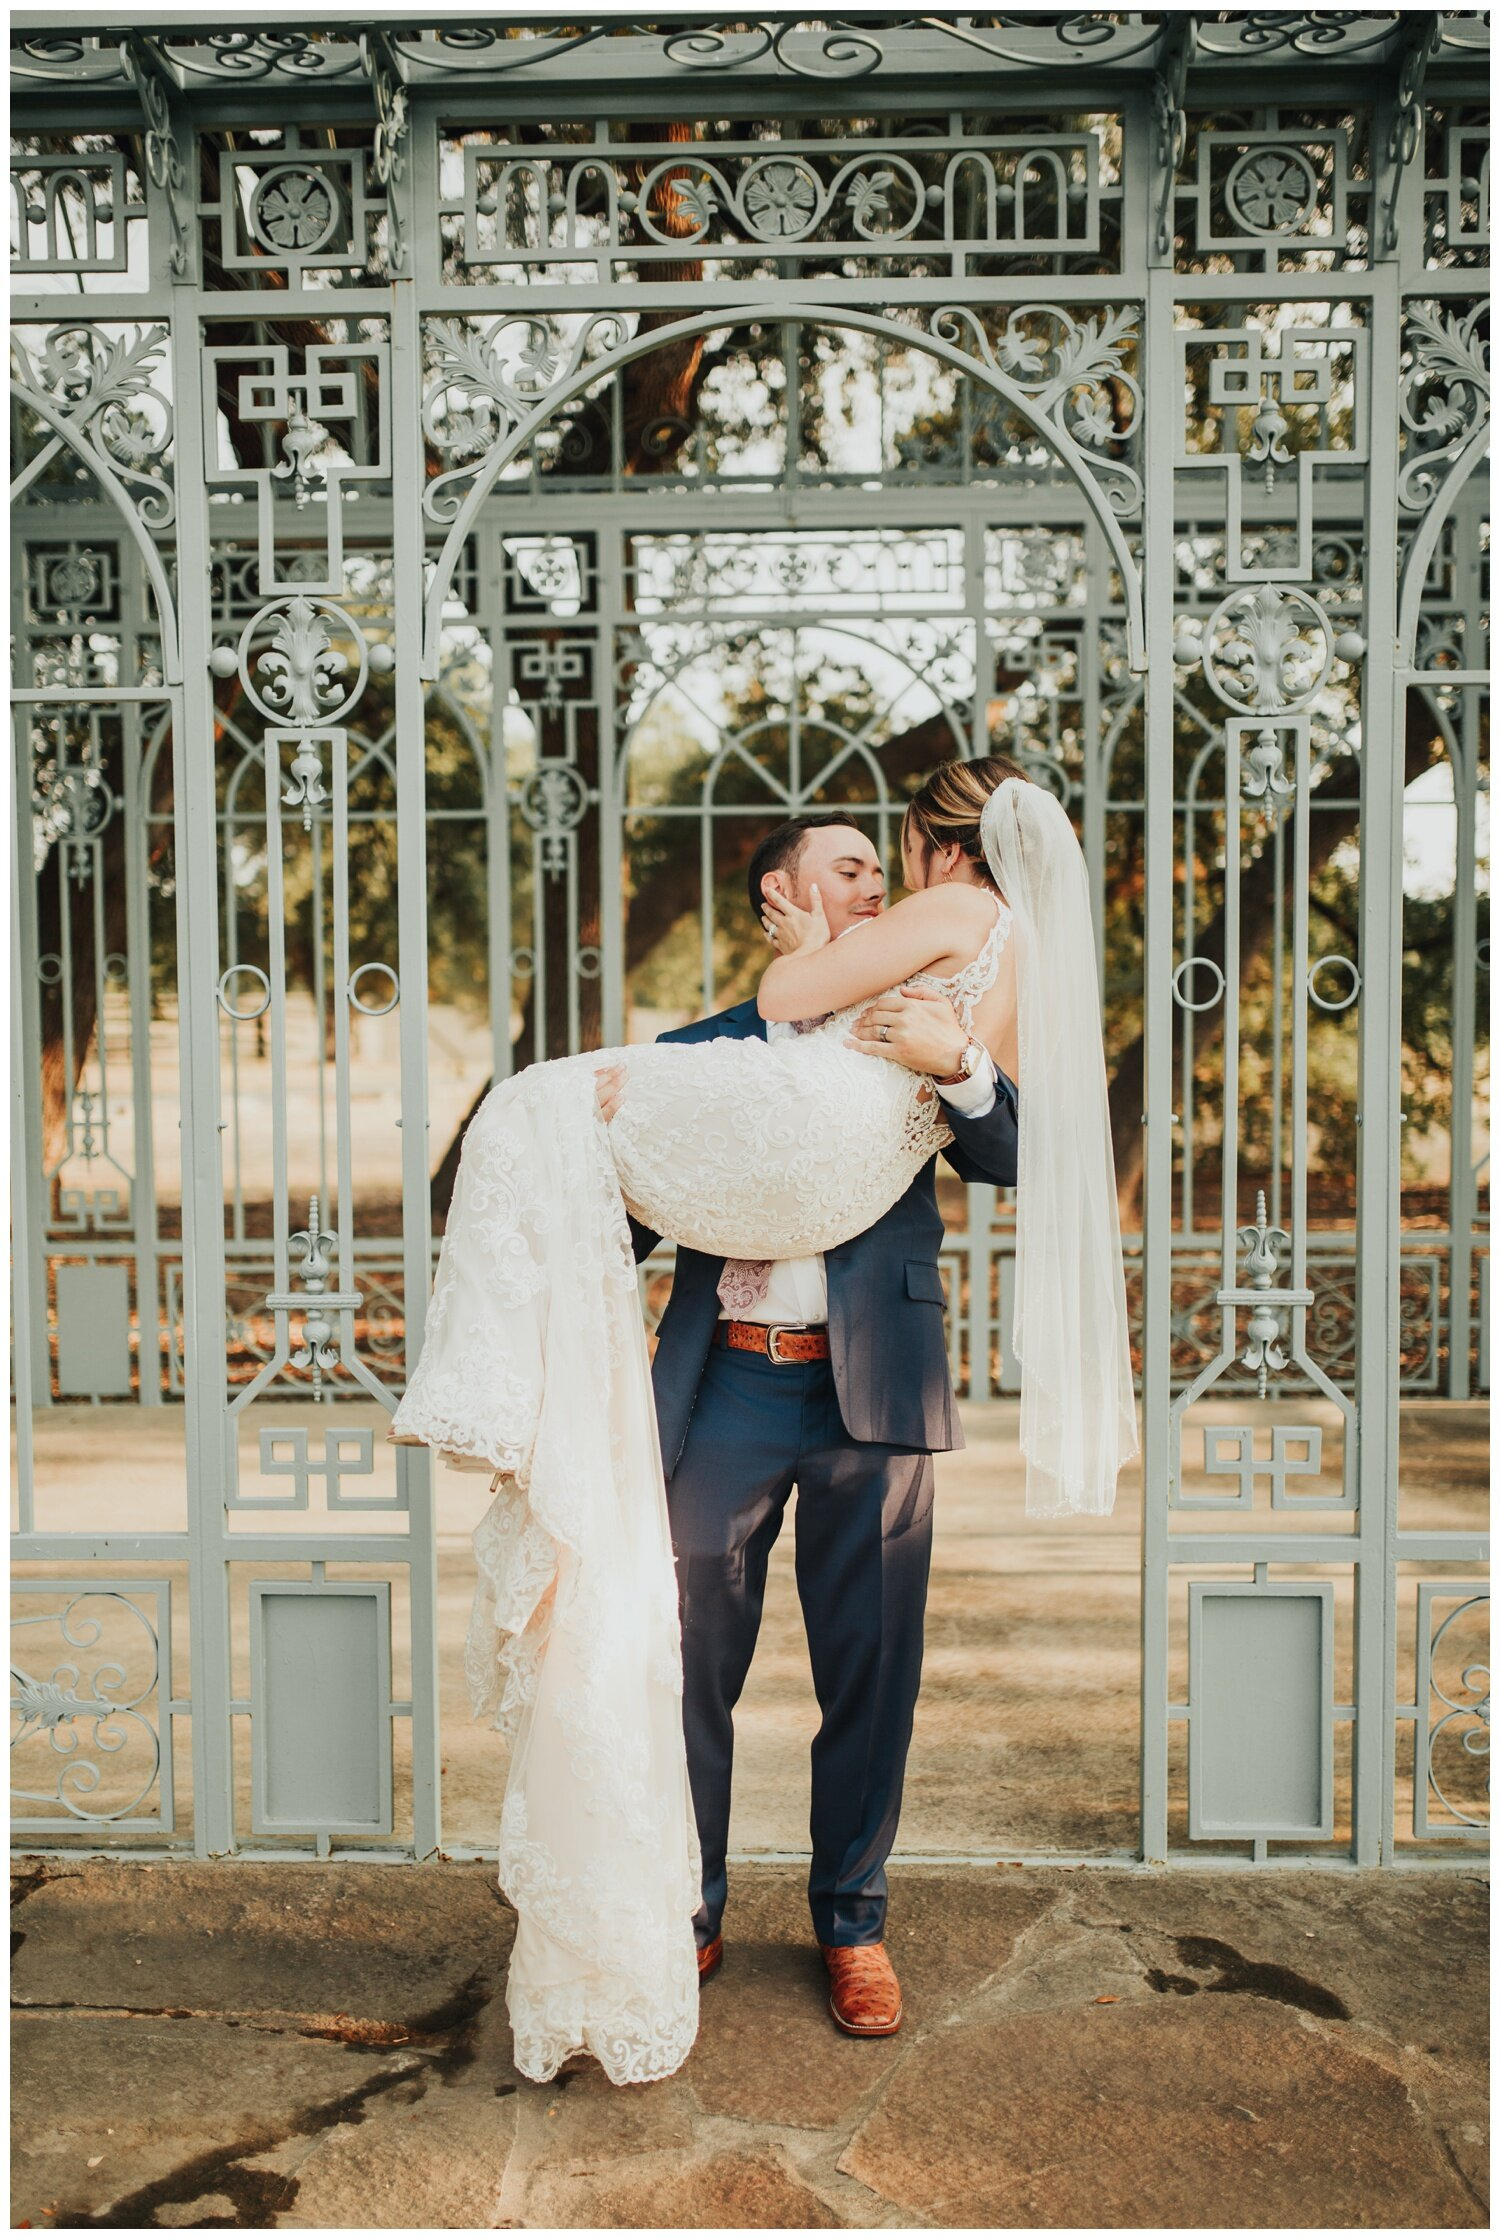 Modern Wedding at Ma Maison in Dripping Springs, Austin, Texas (Joshua and Parisa – Austin Wedding Photographer)_0056.jpg